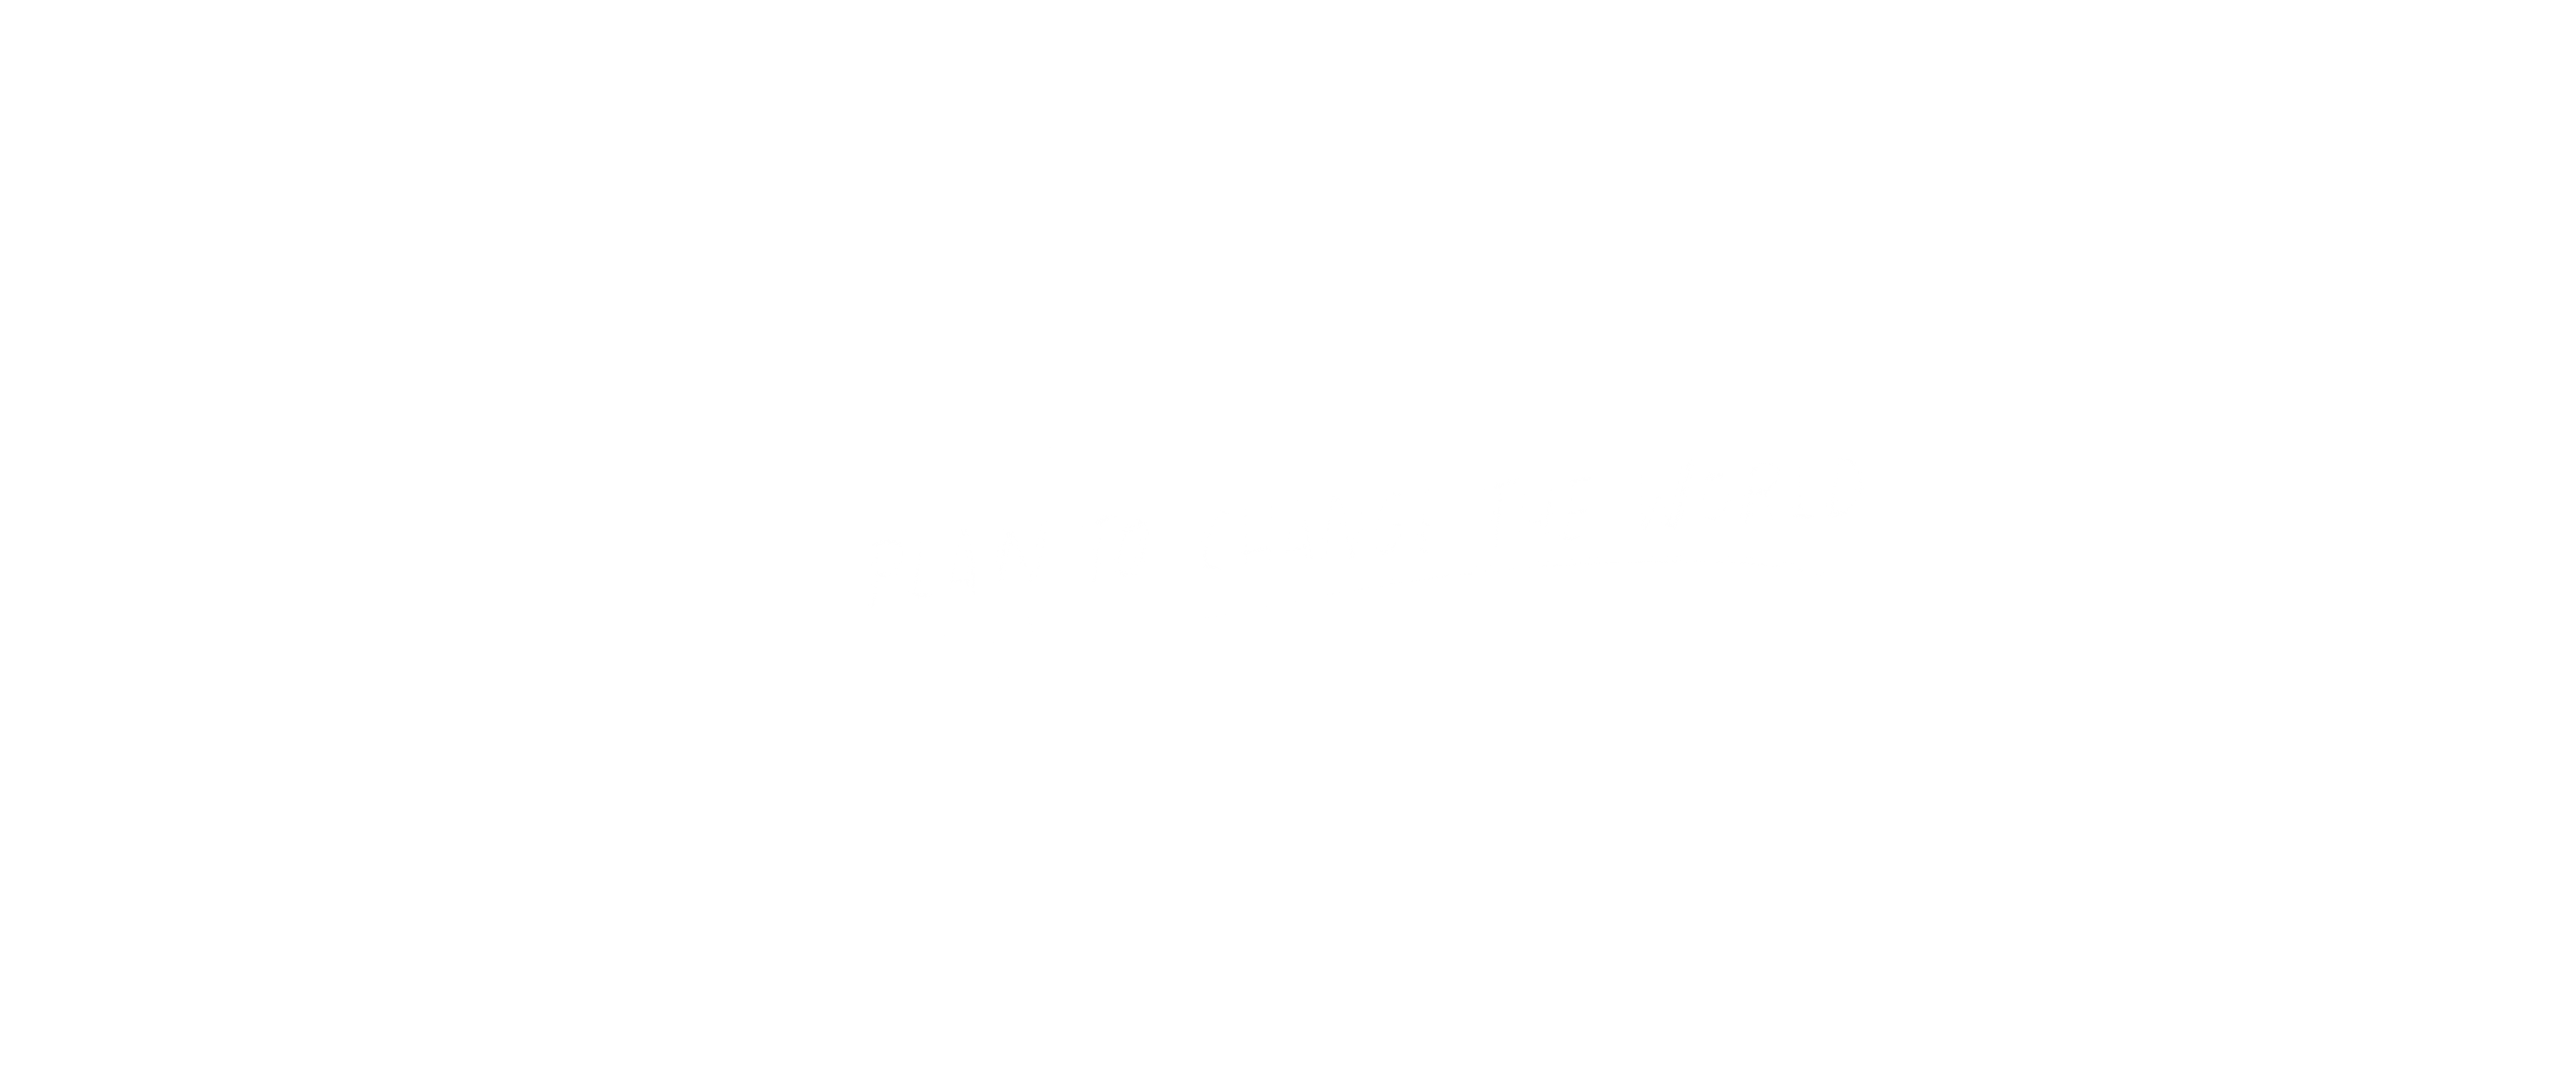 Plan to change the world